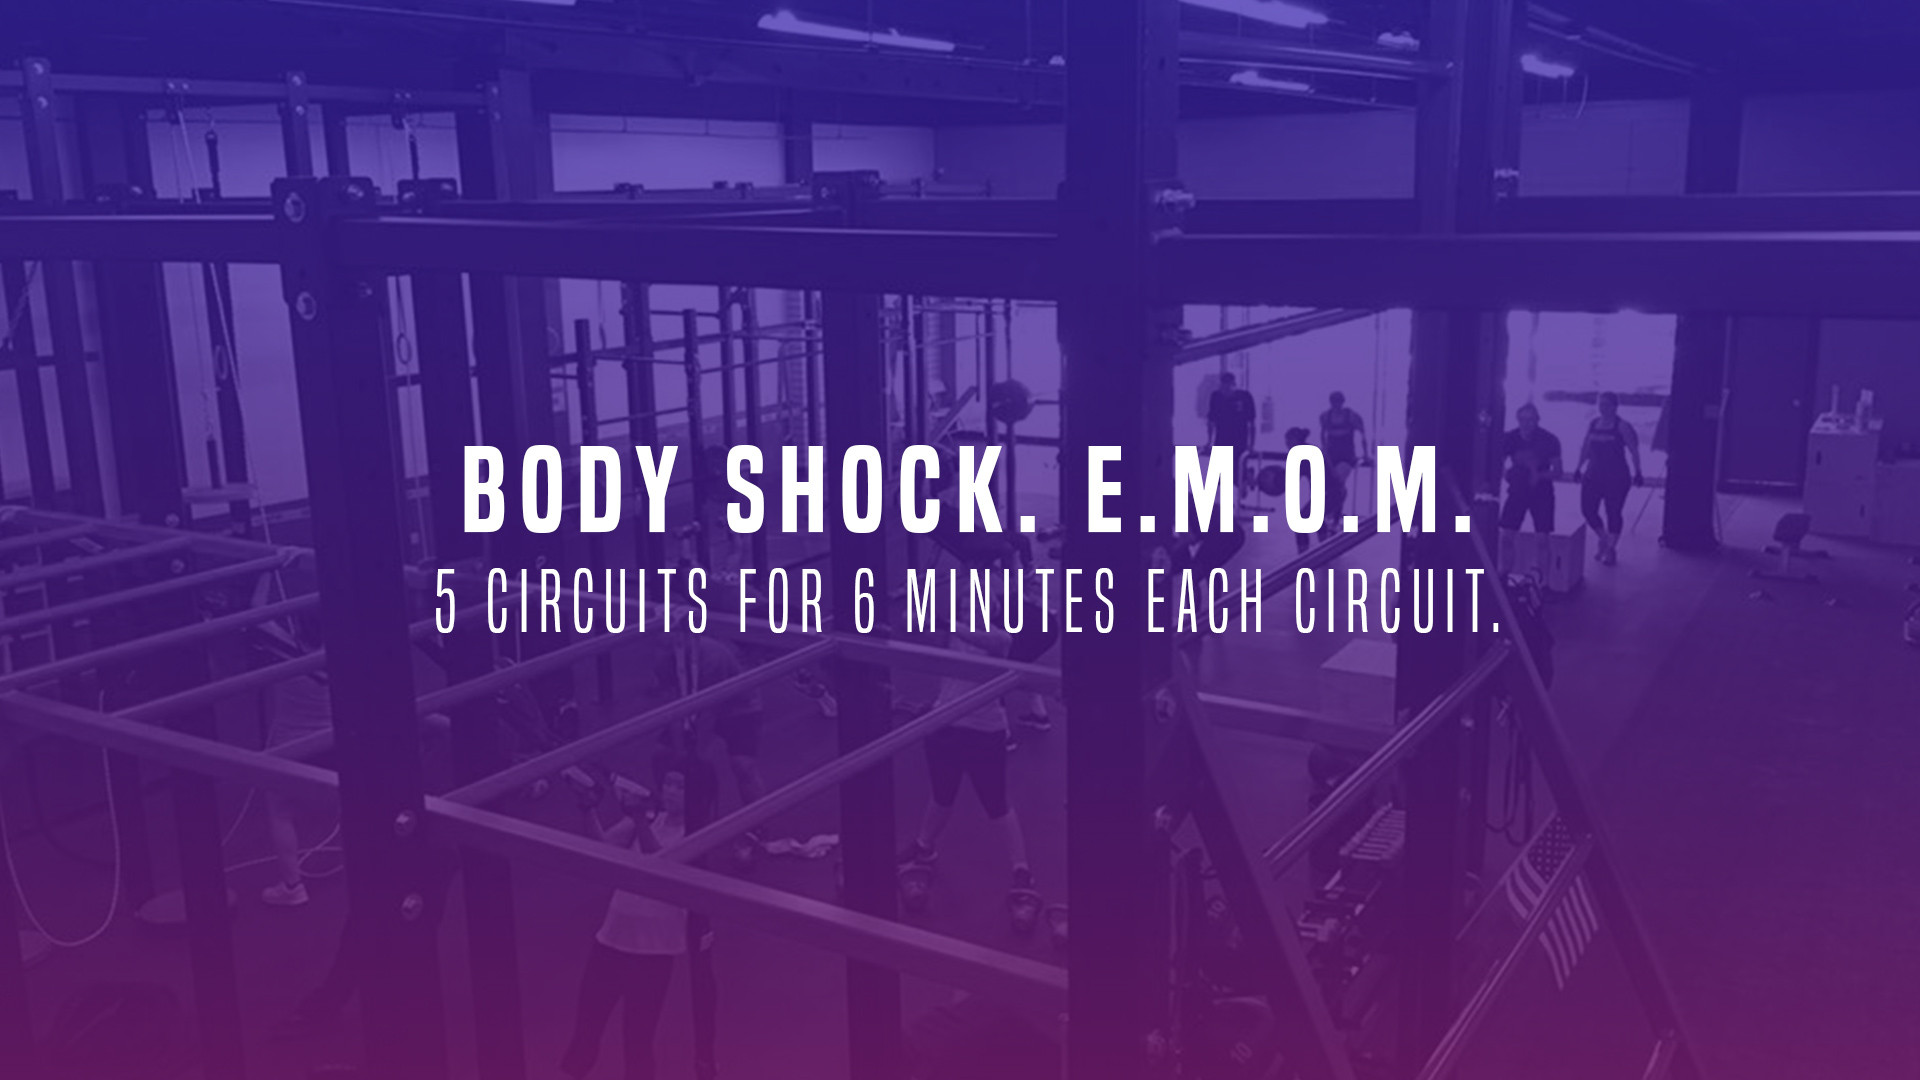 Body Shock. E.M.O.M. 5 Circuits for 6 Minutes Each Circuit.